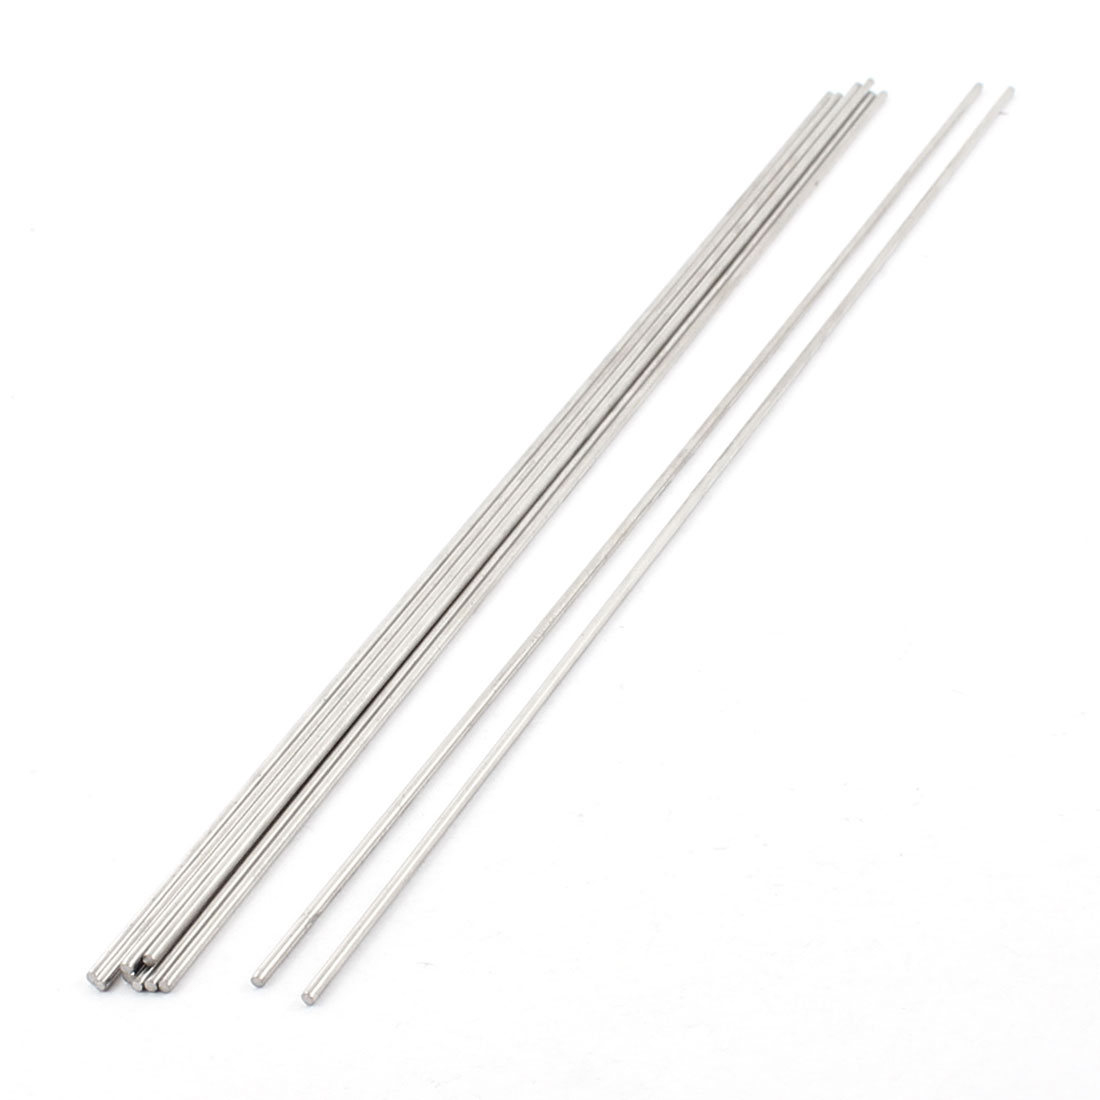 10Pcs 2mm Dia 300mm Length Stainless Steel Round Rod Shaft for RC Toy Car